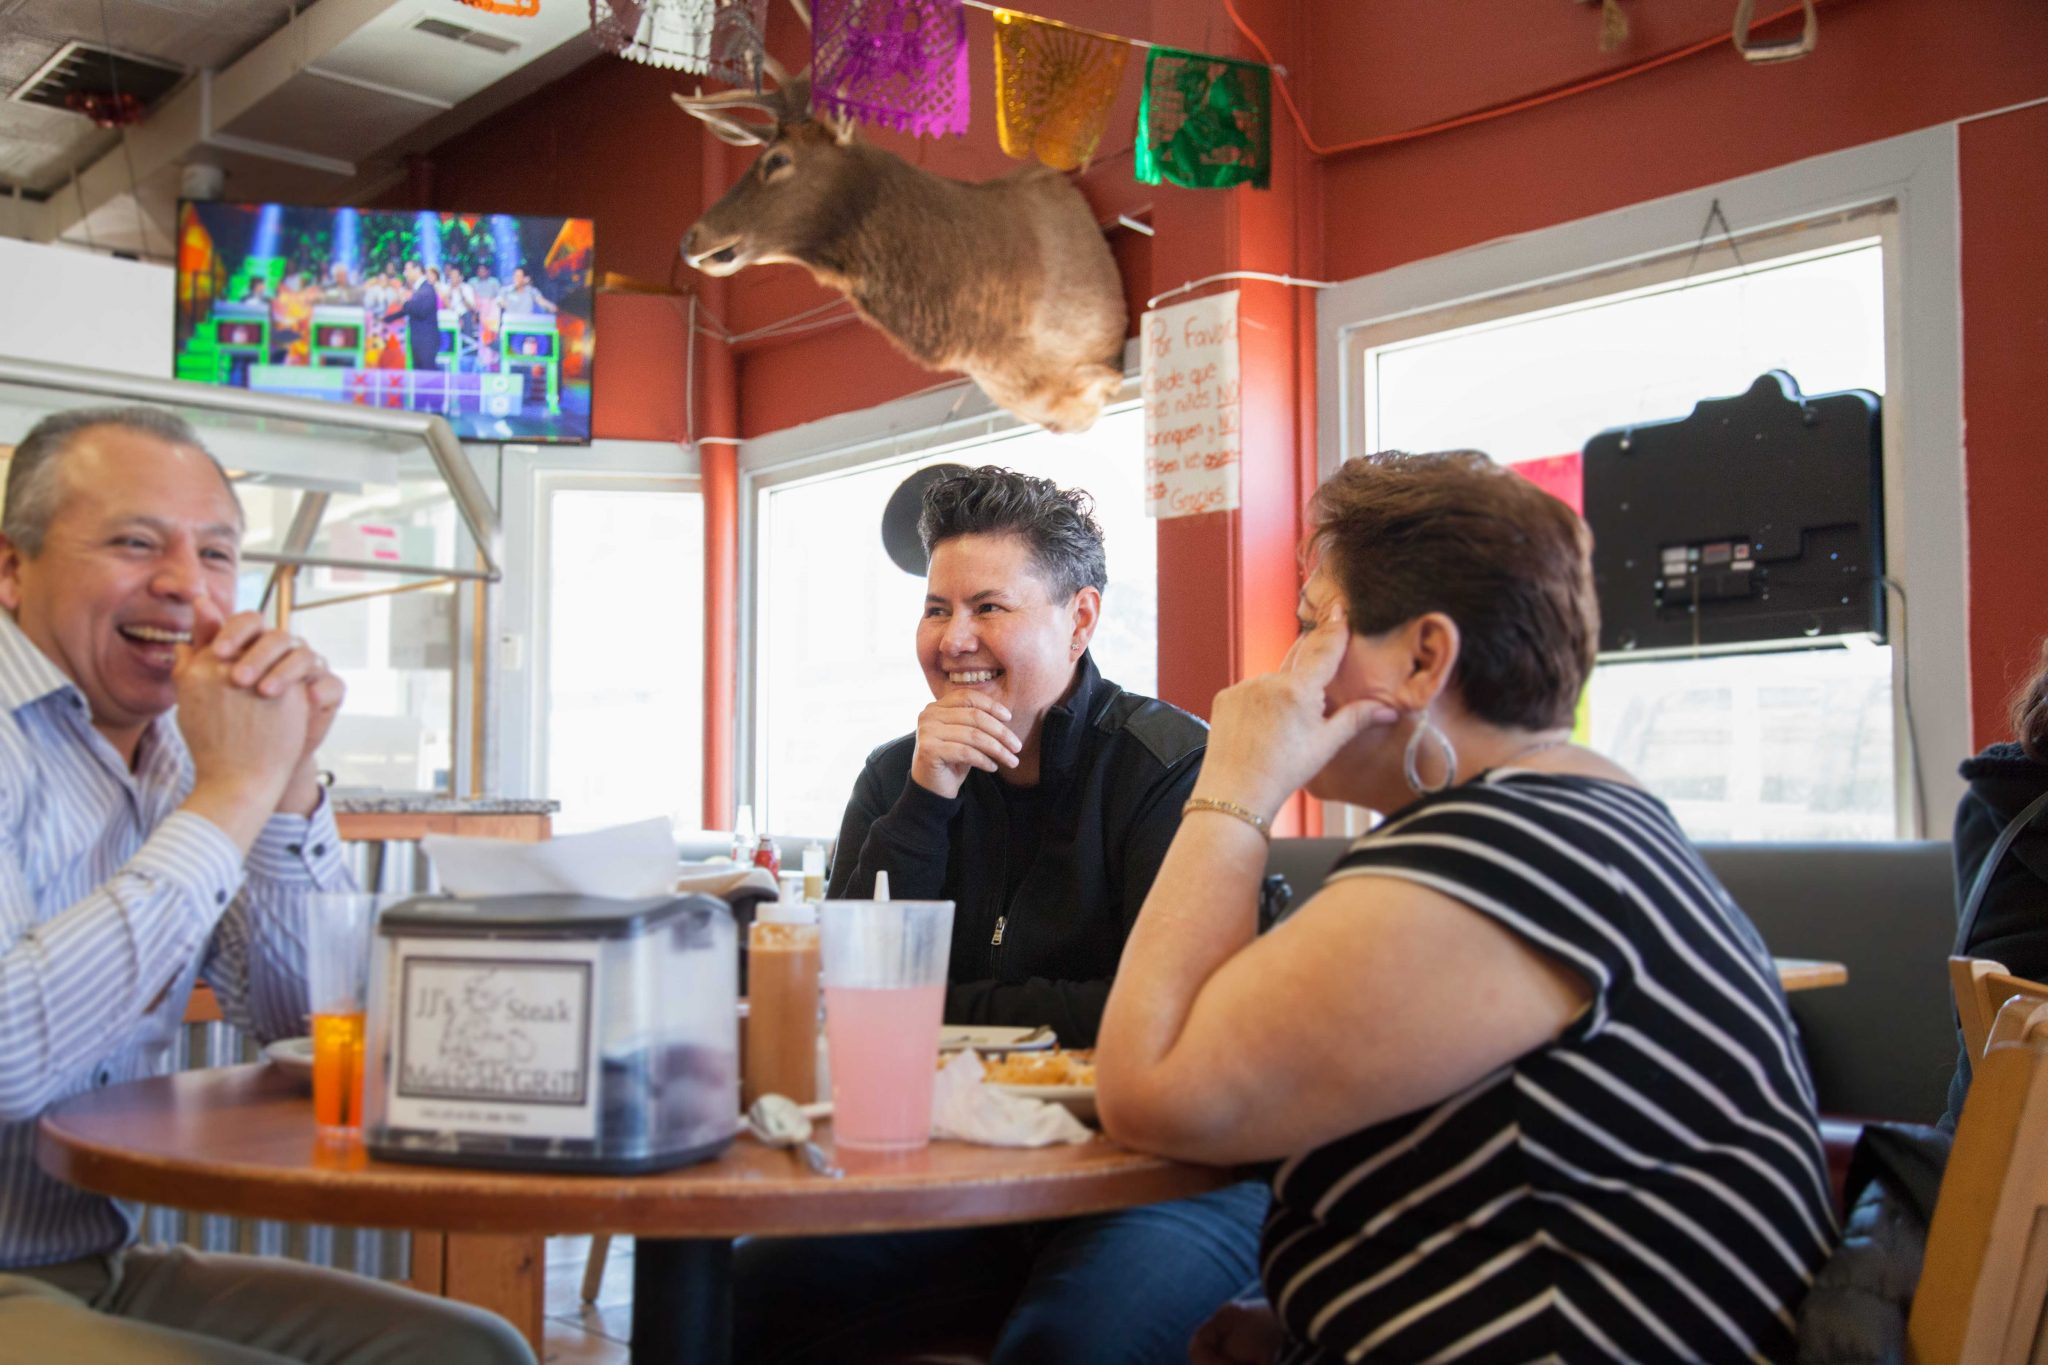 Plaza Del Sol owner Sonia Ortega (center) sits down to chat with customers.